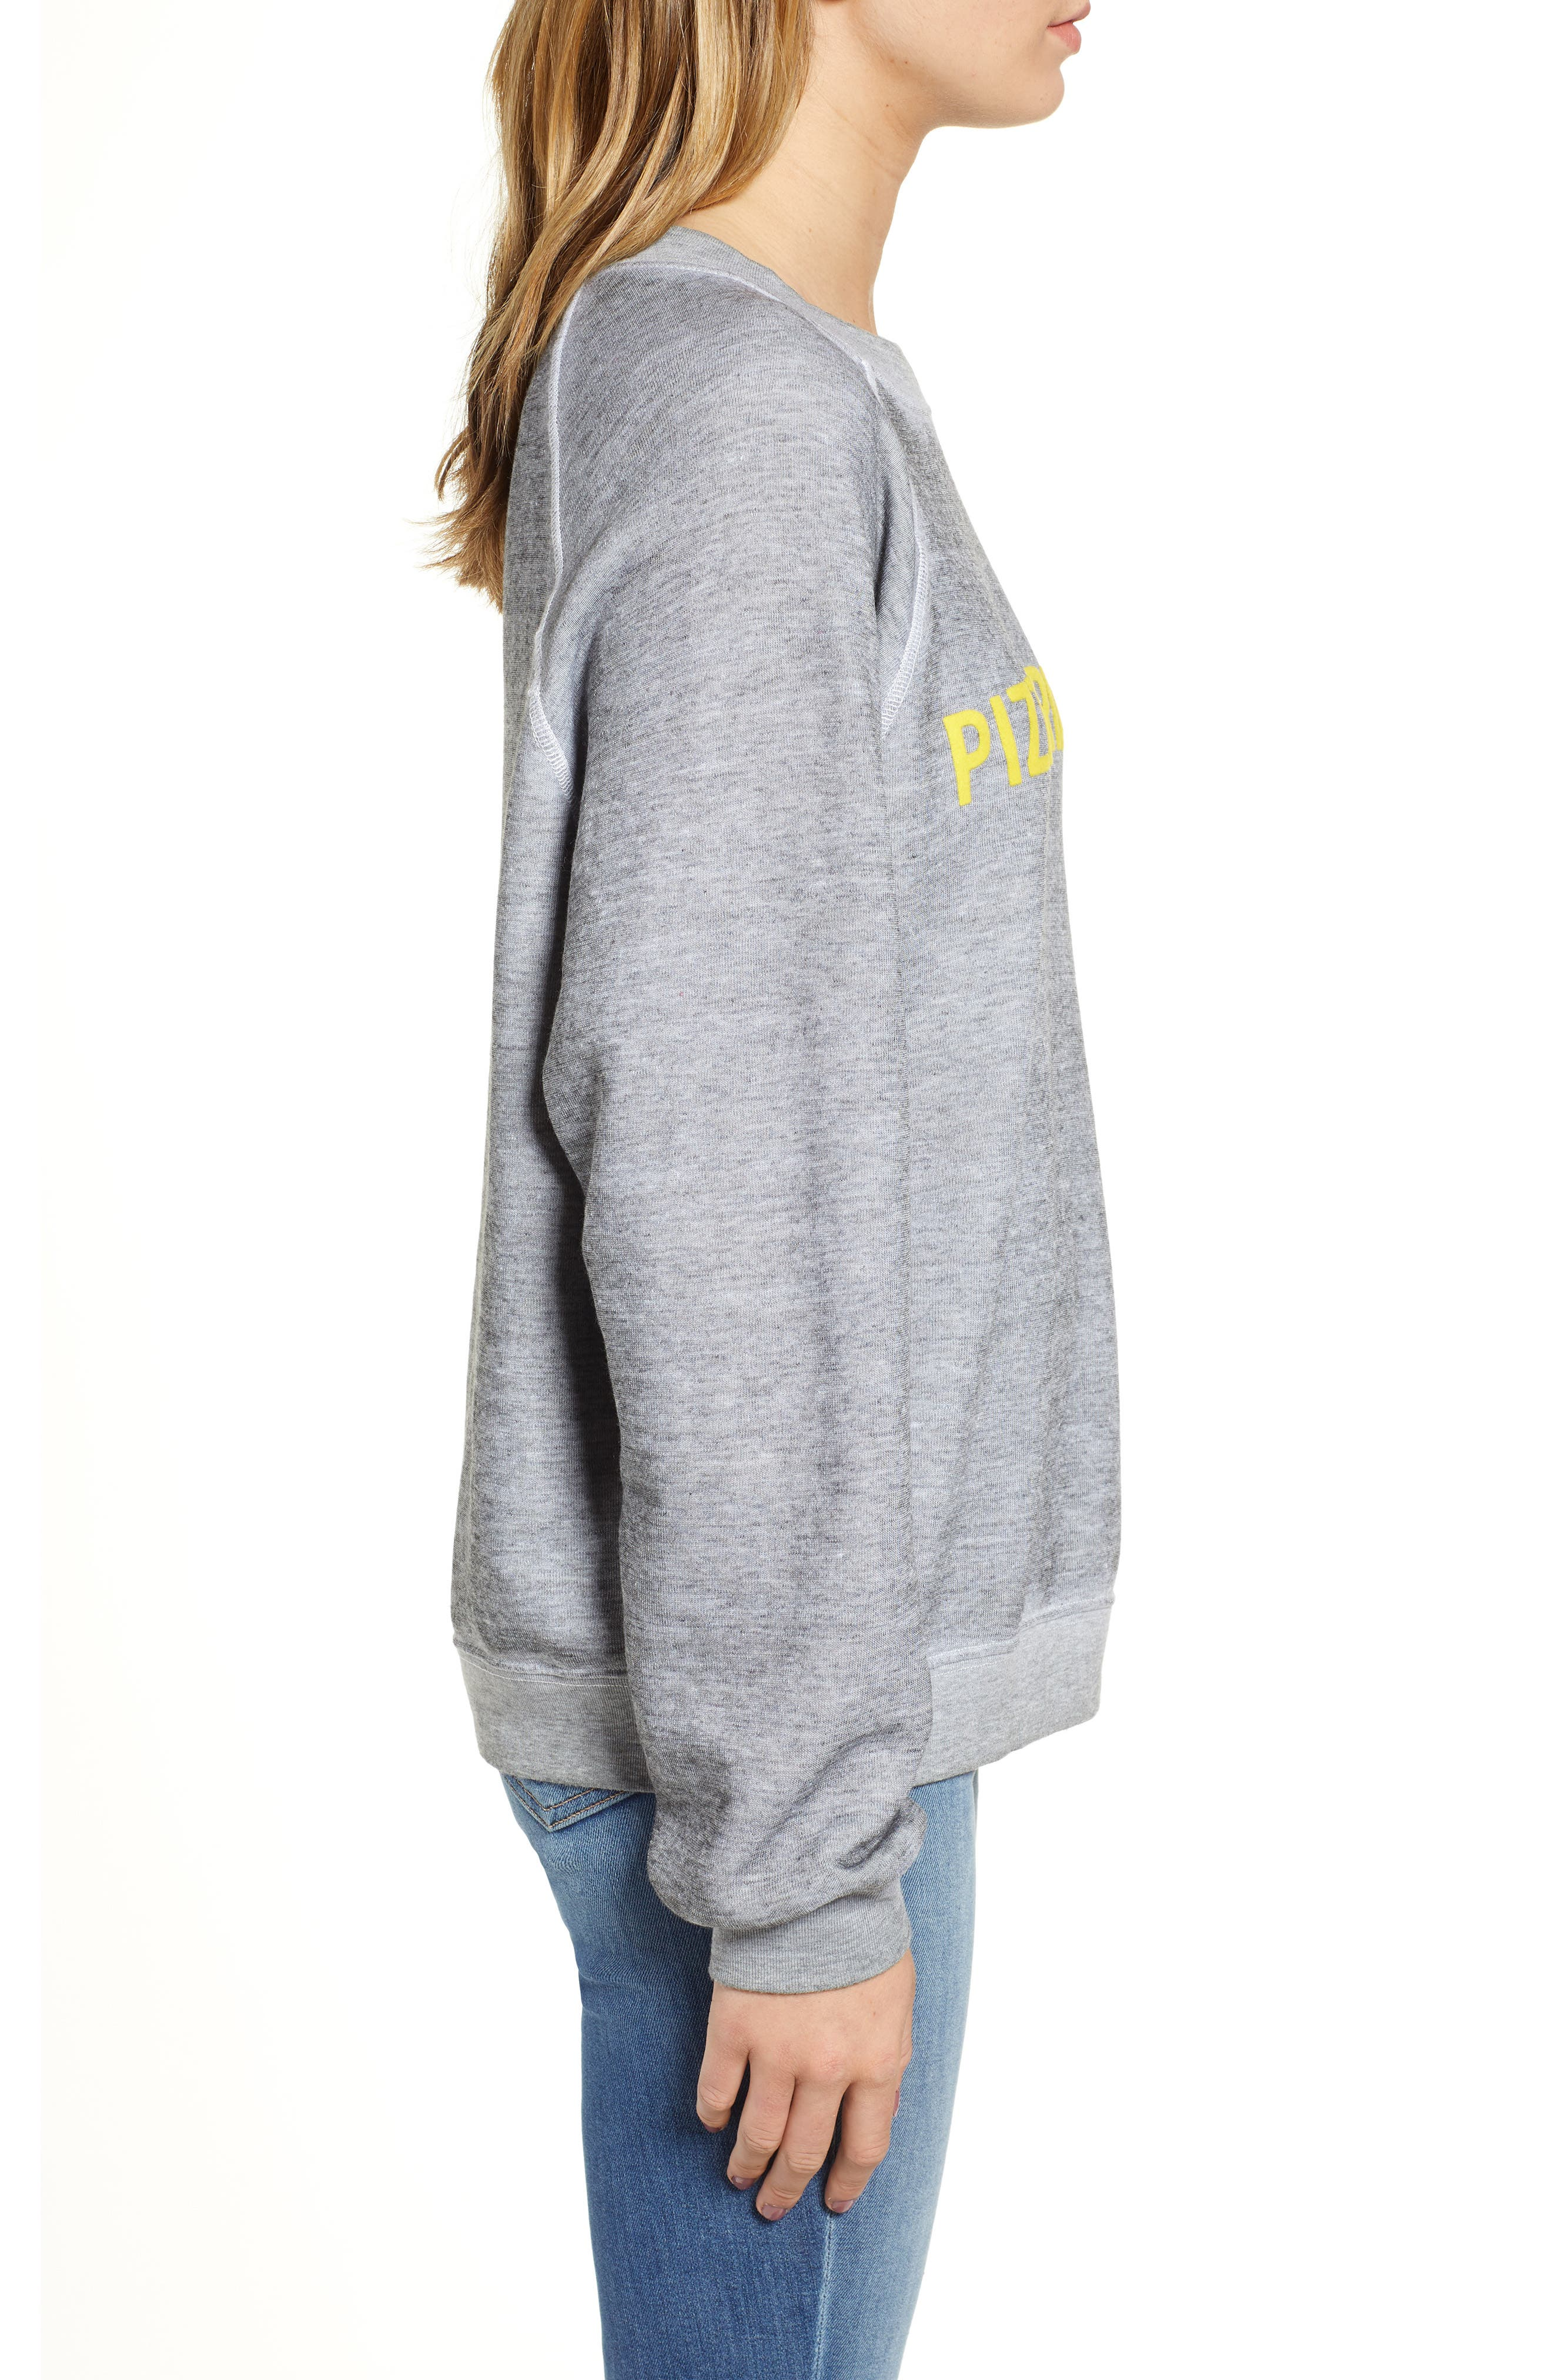 Pizzatarian Sommers Sweatshirt,                             Alternate thumbnail 3, color,                             HEATHER